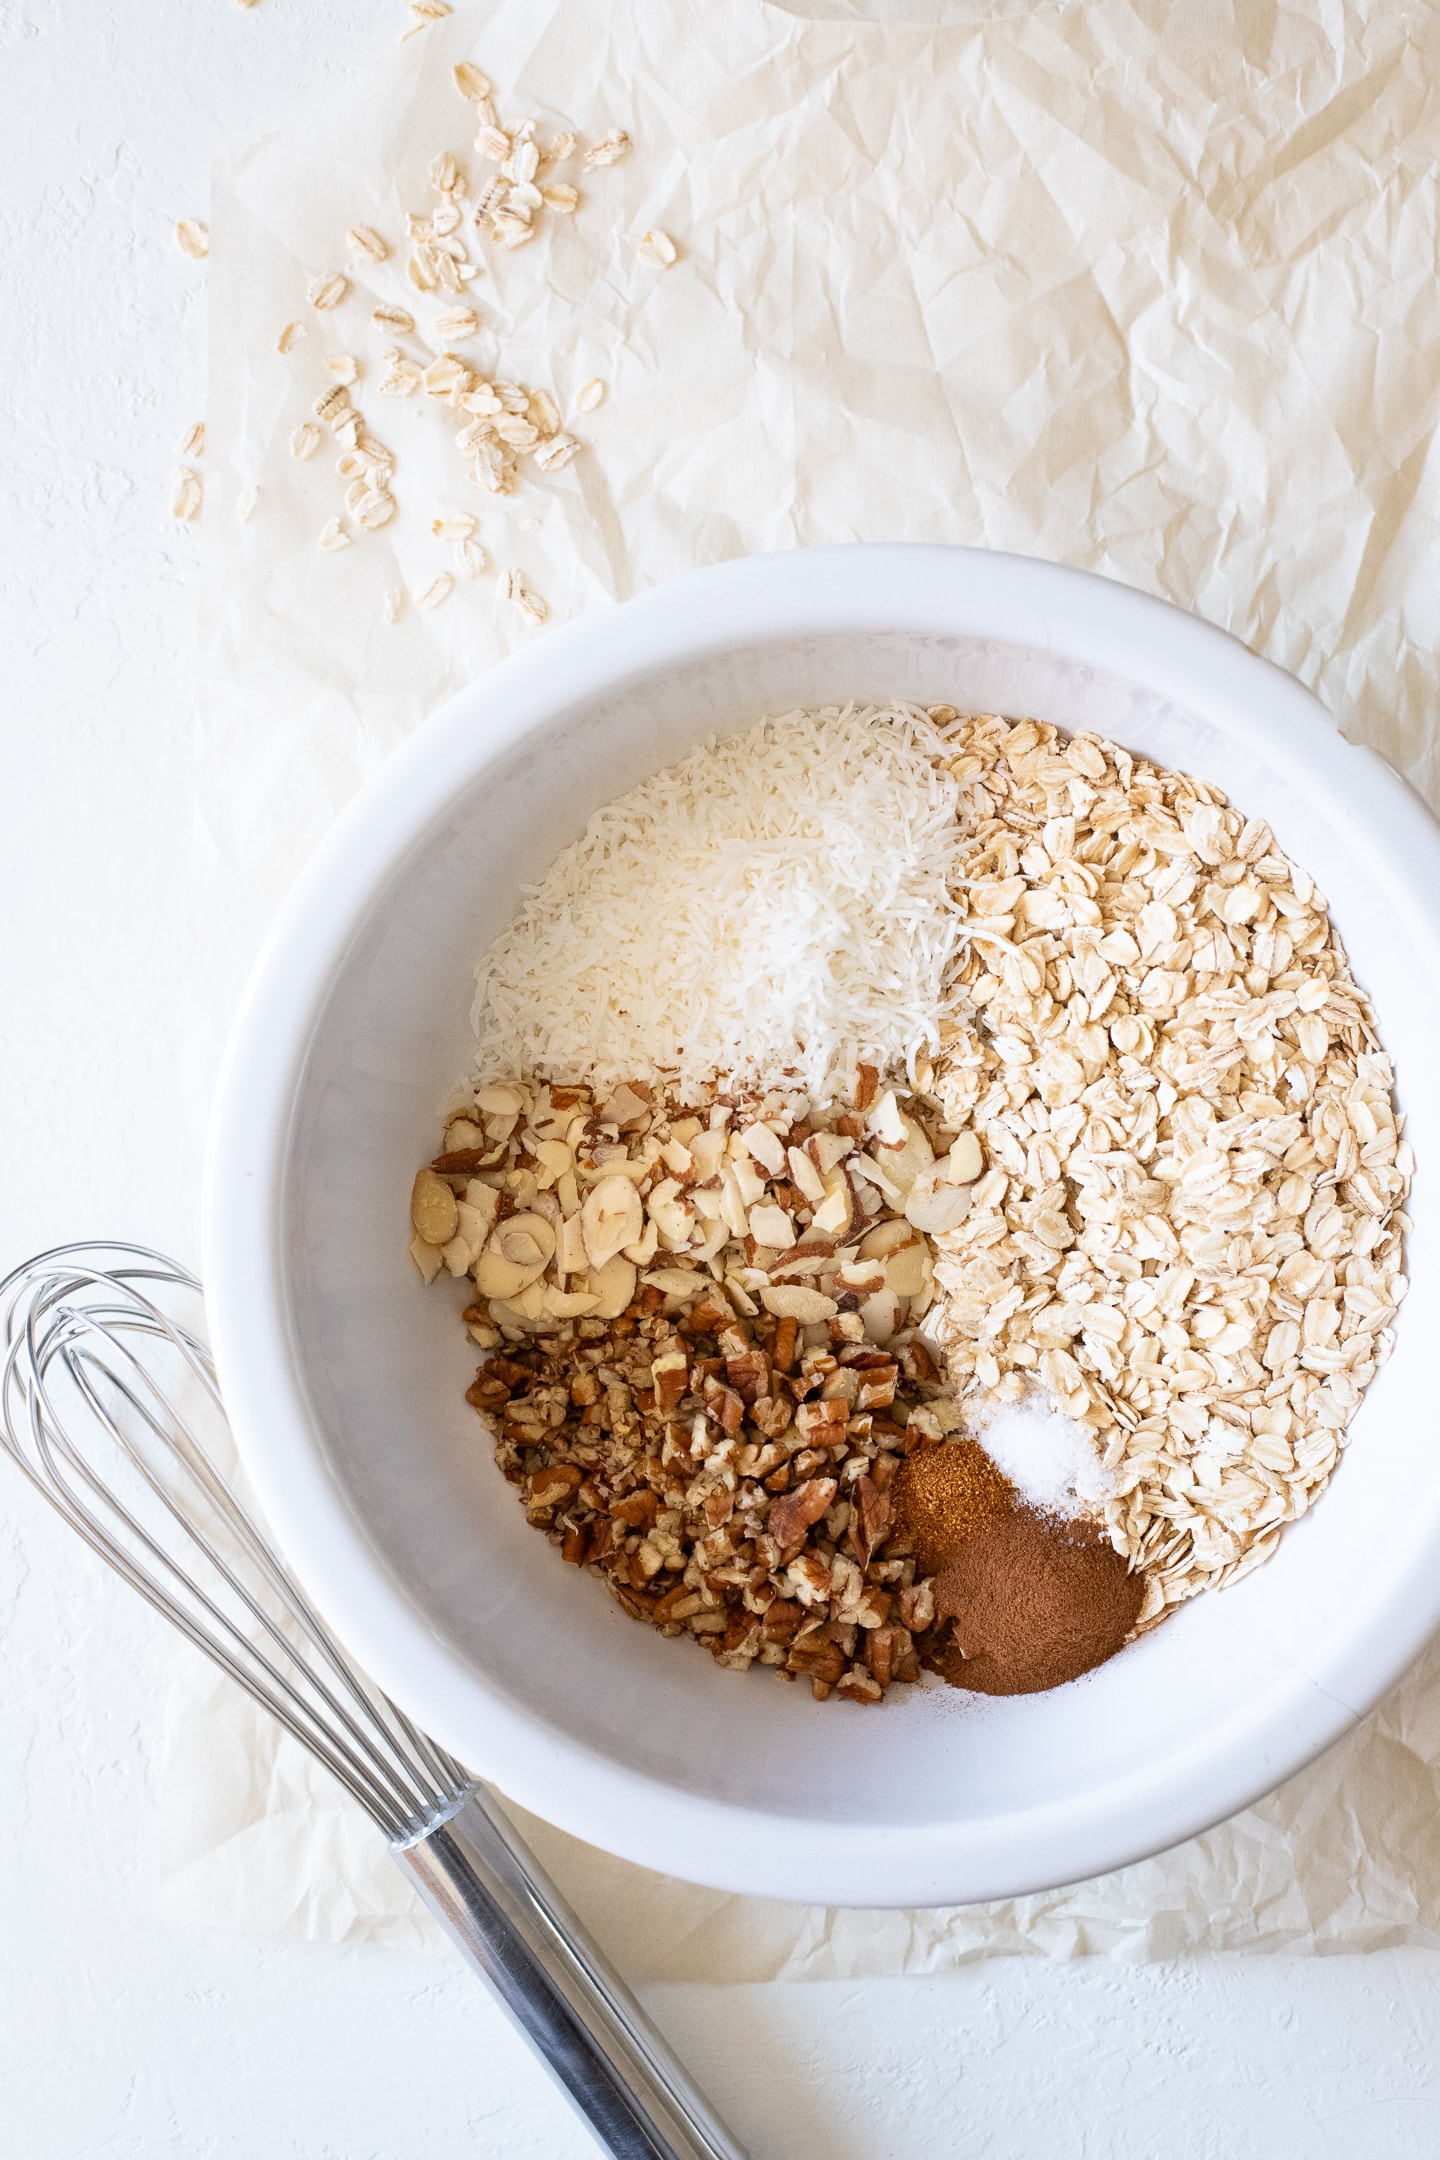 Overhead view of the ingredients for making Easy Homemade Granola in a large white bowl, with a whisk and scattered oats on the side.